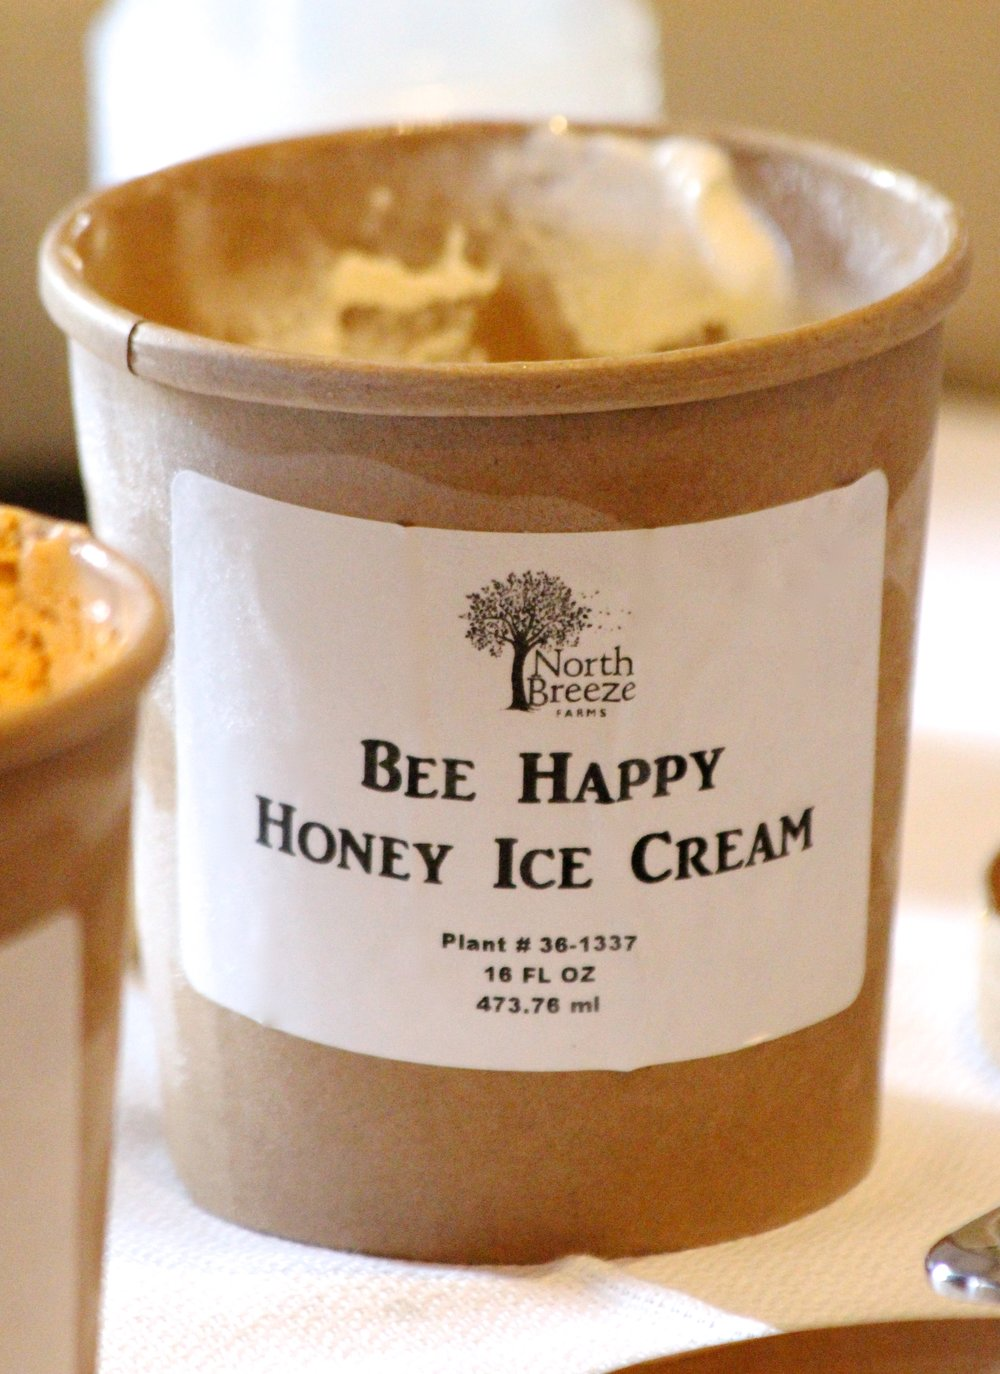 Bee Happy Honey Ice Cream $5.99